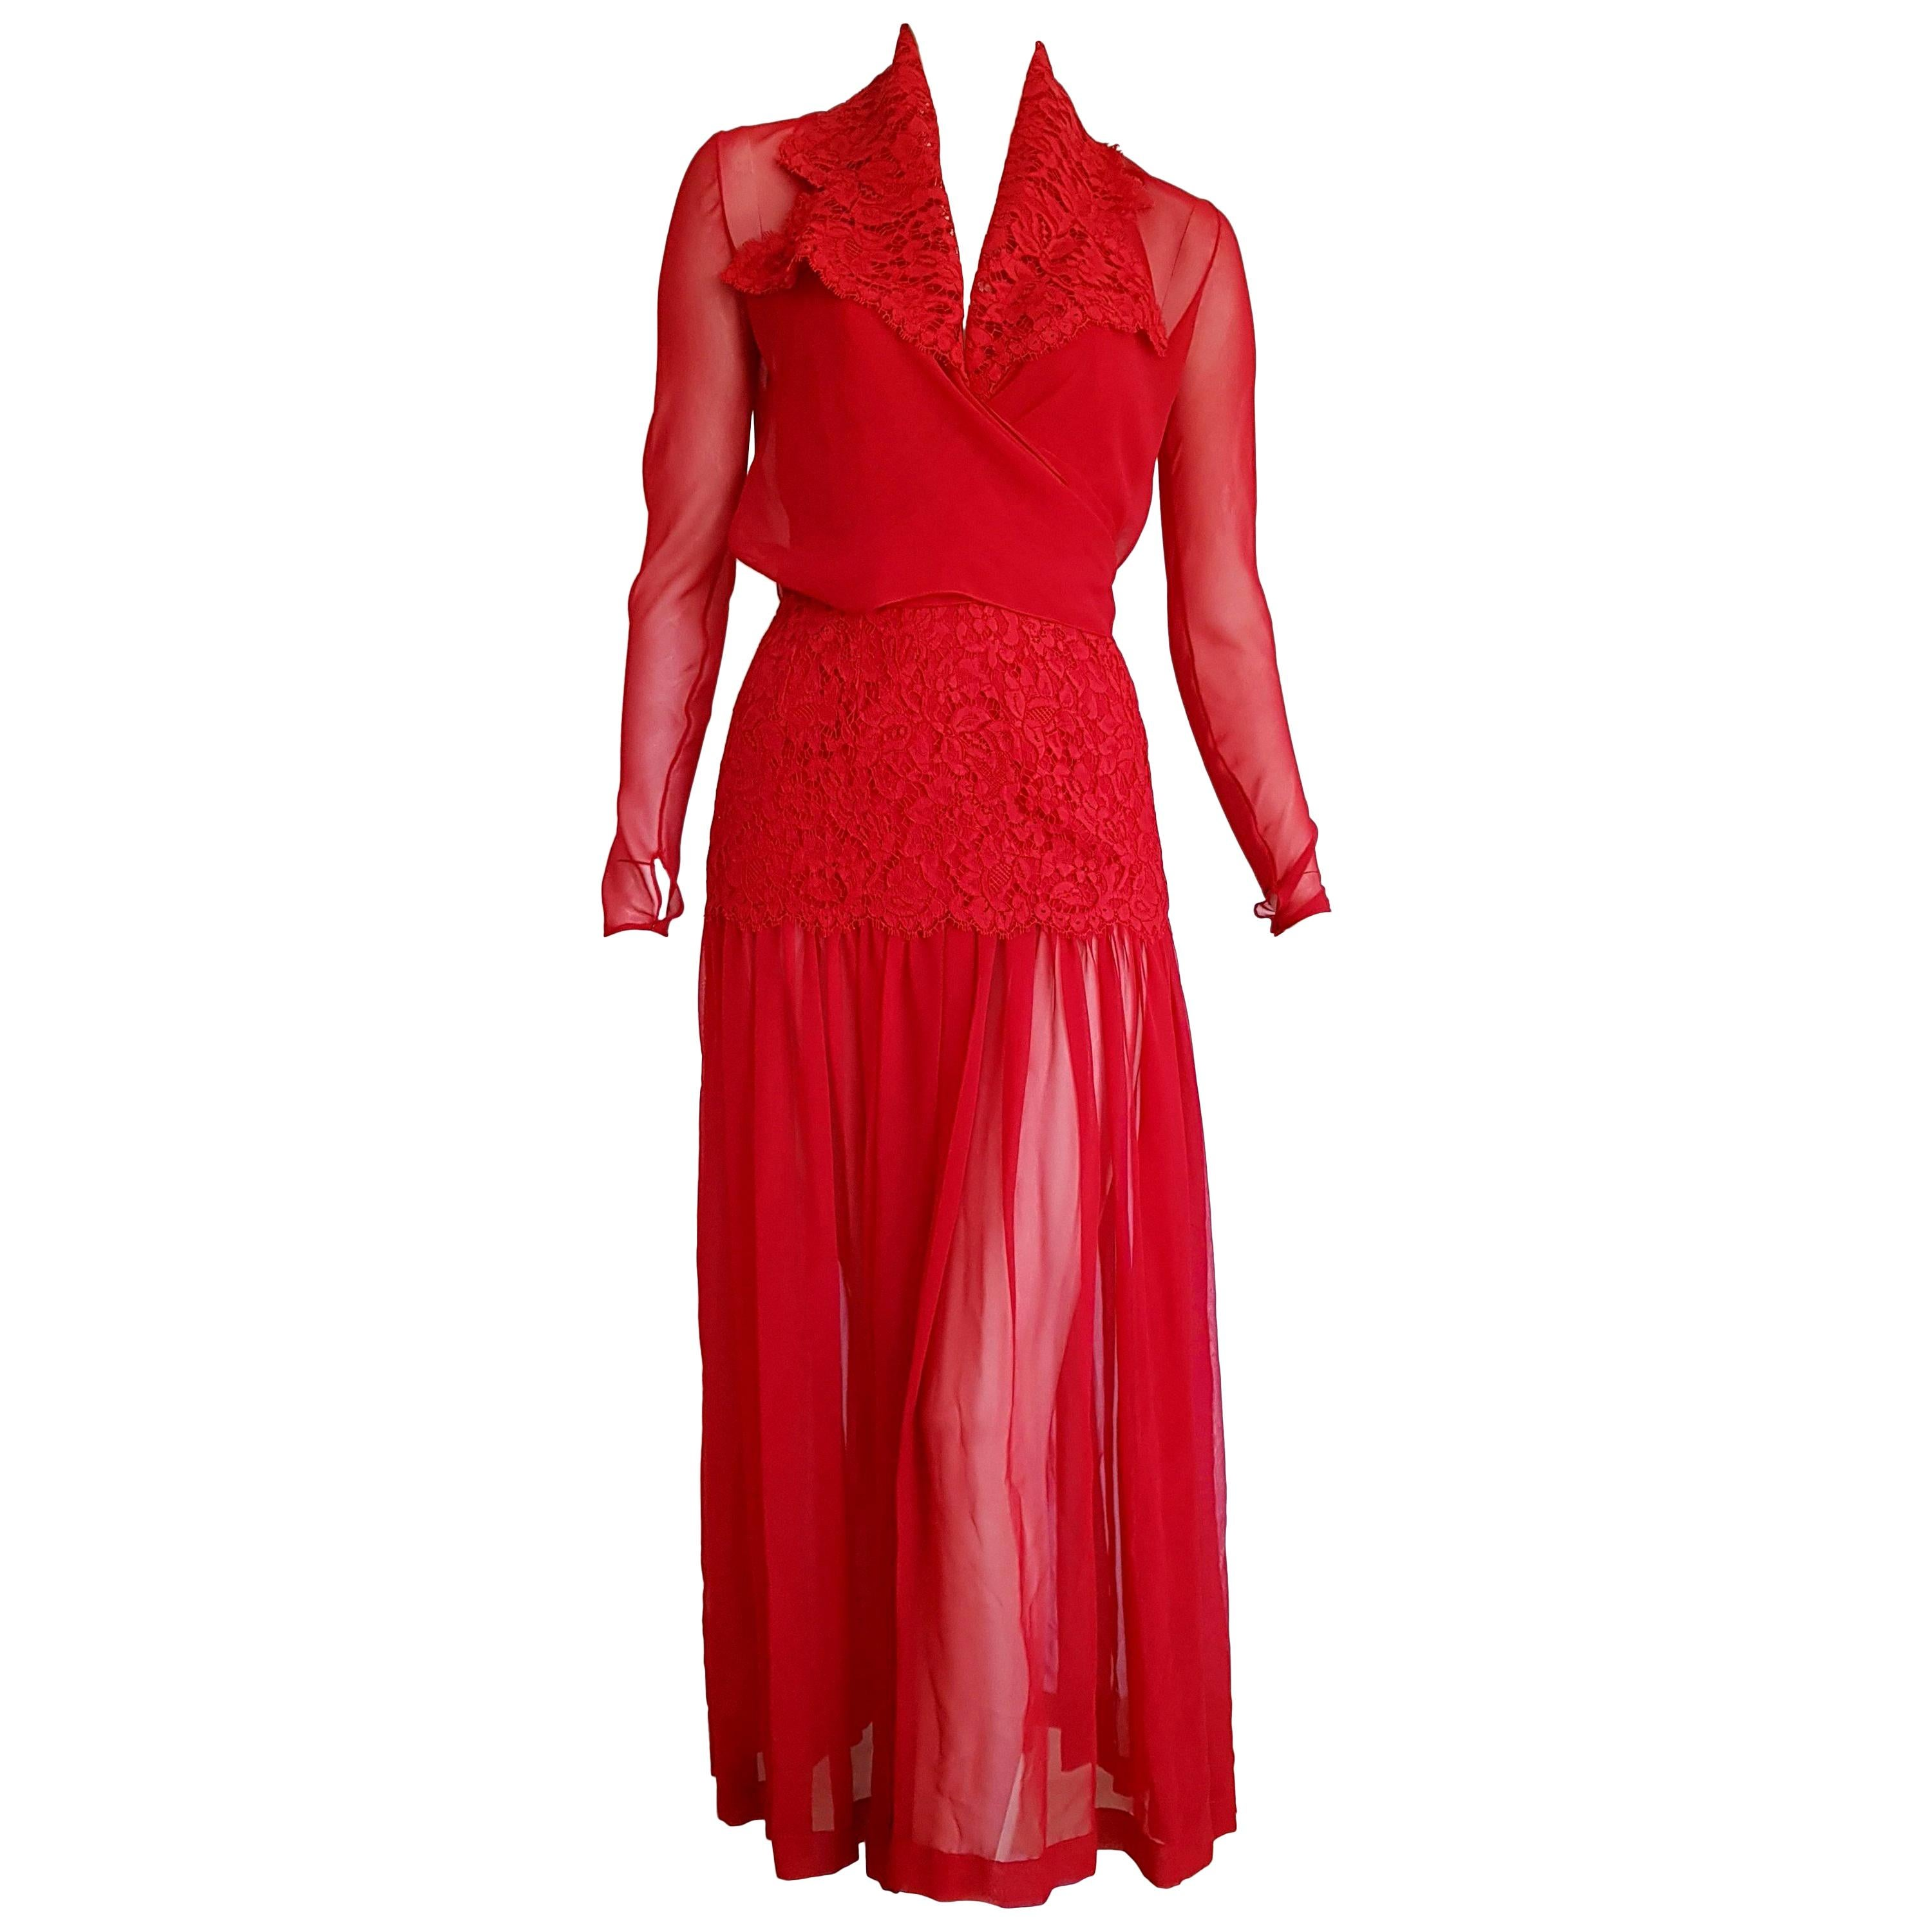 c5827e4130 Evening Dresses and Gowns on Sale at 1stdibs